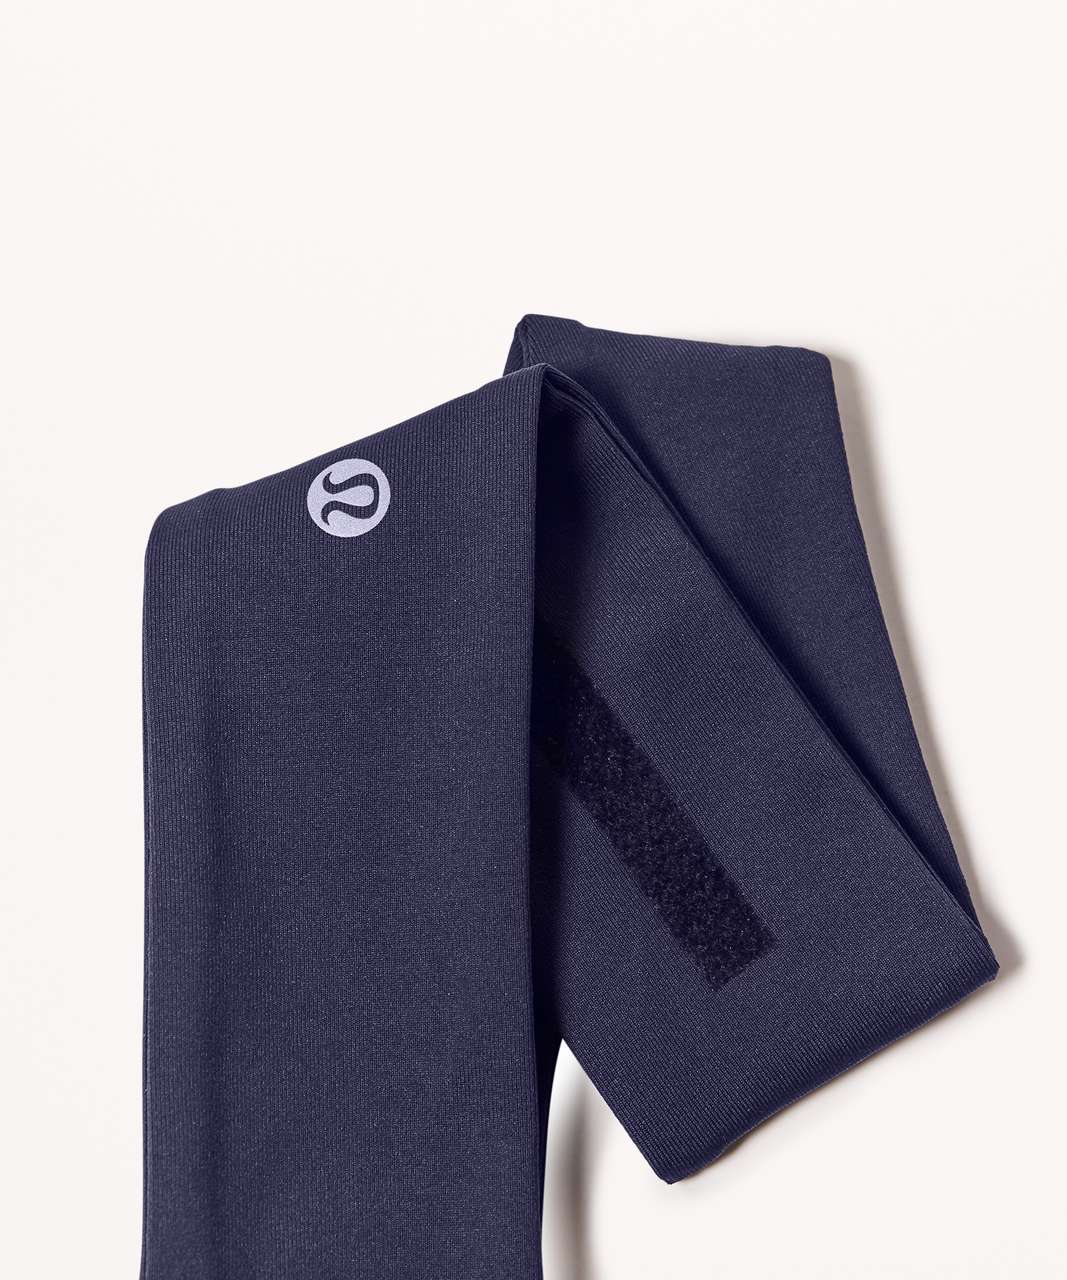 Lululemon Fly Away Tamer Headband II *Luxtreme - Midnight Navy